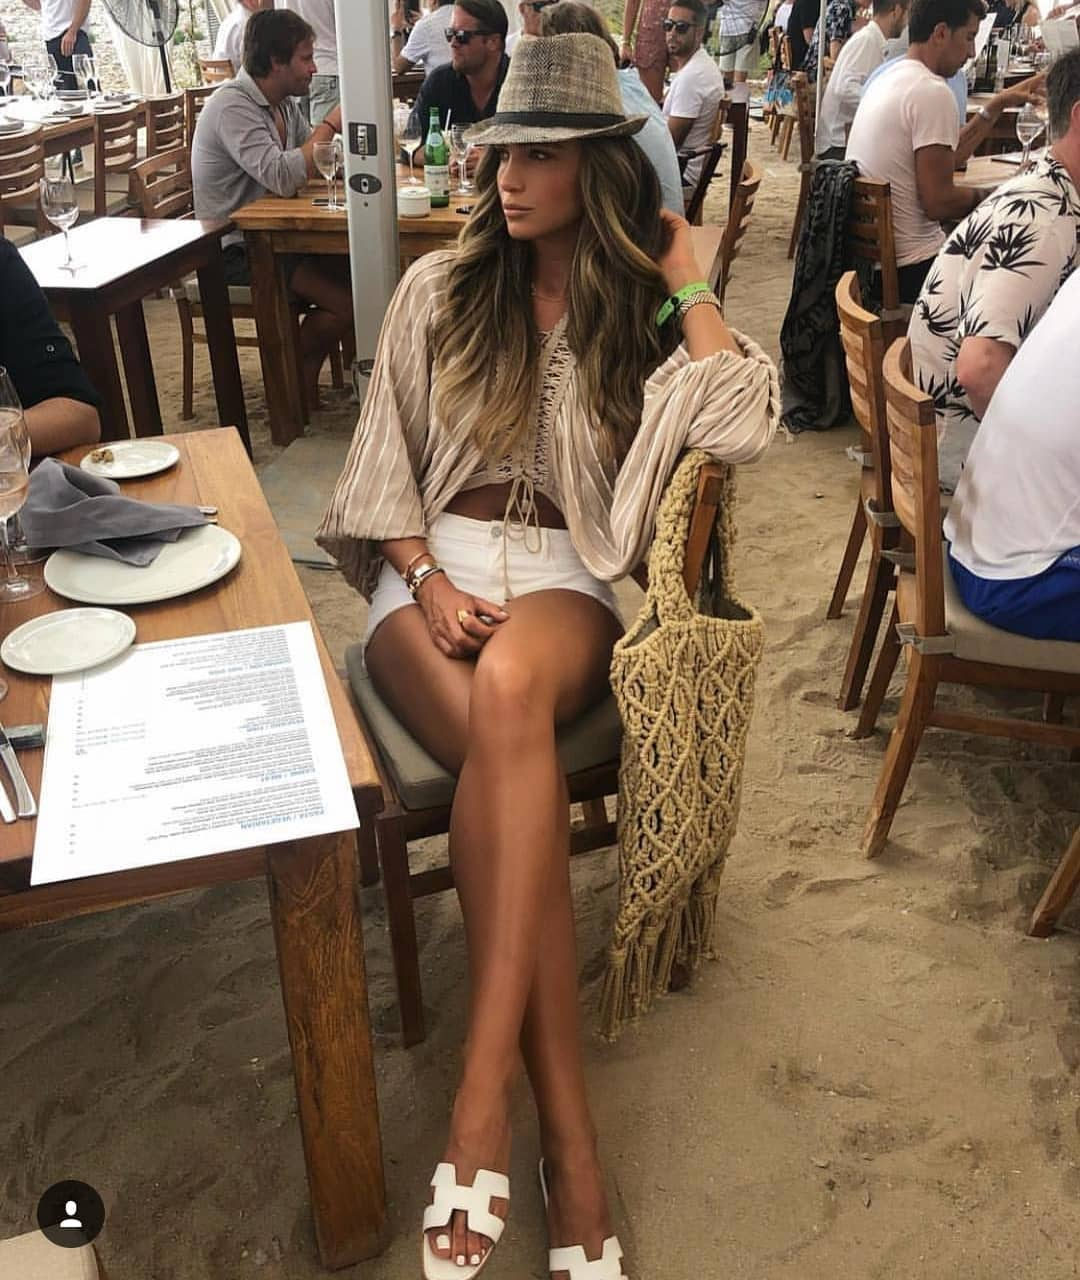 Loose Sleeve Linen Blouse With White Shorts And White Slides For Summer 2020